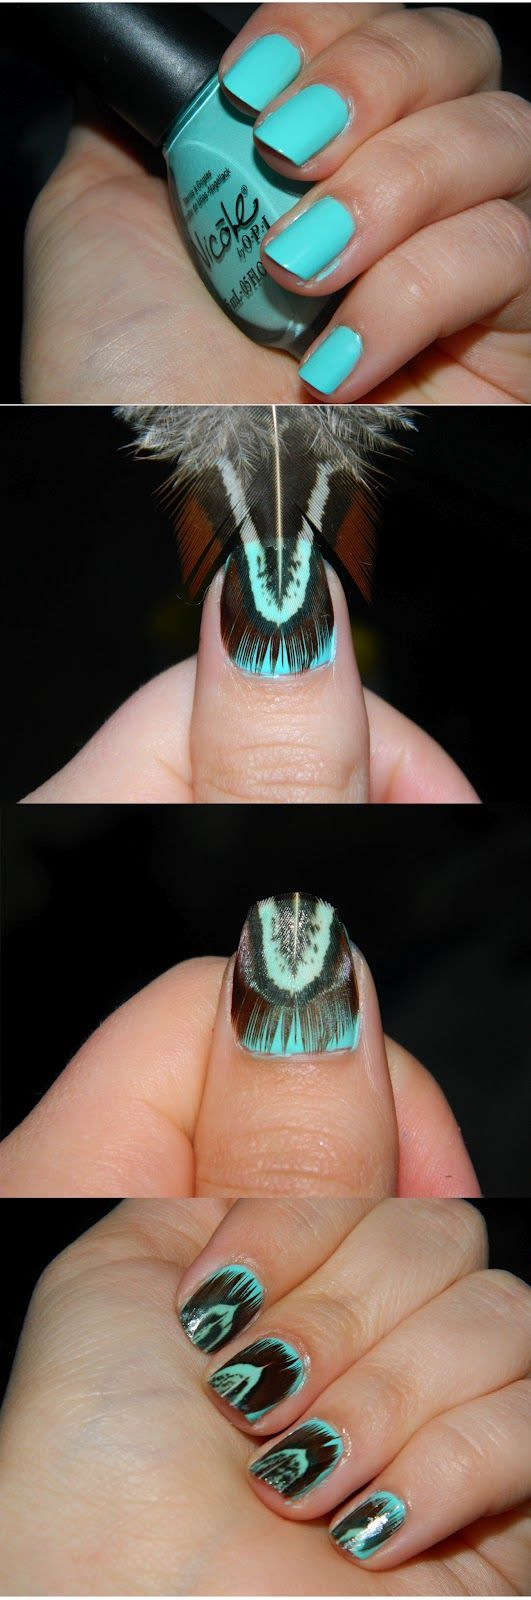 The Beauty Bandit: Feather Manicure so cool!